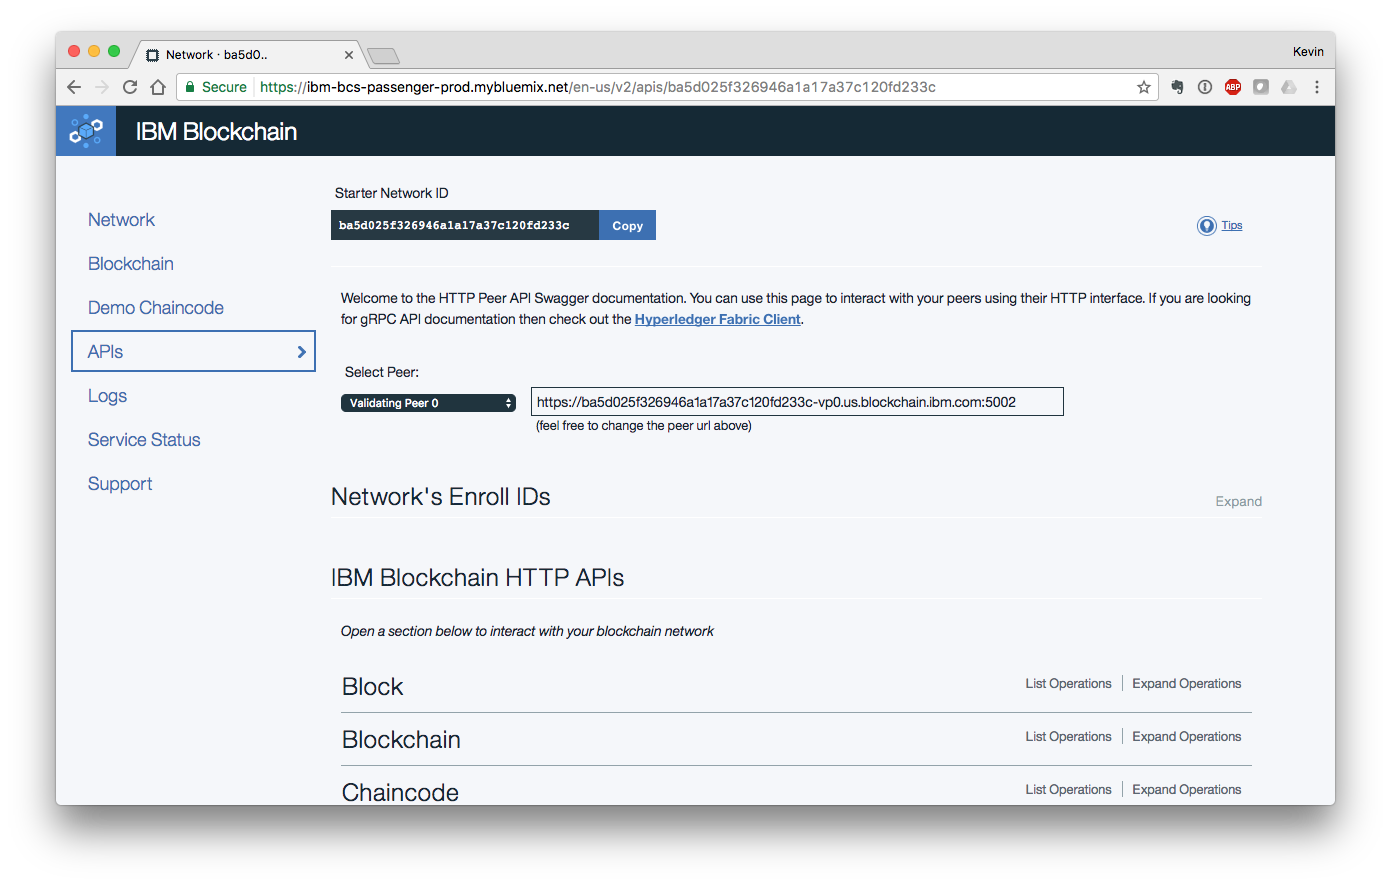 Landing page for the IBM Blockchain console.